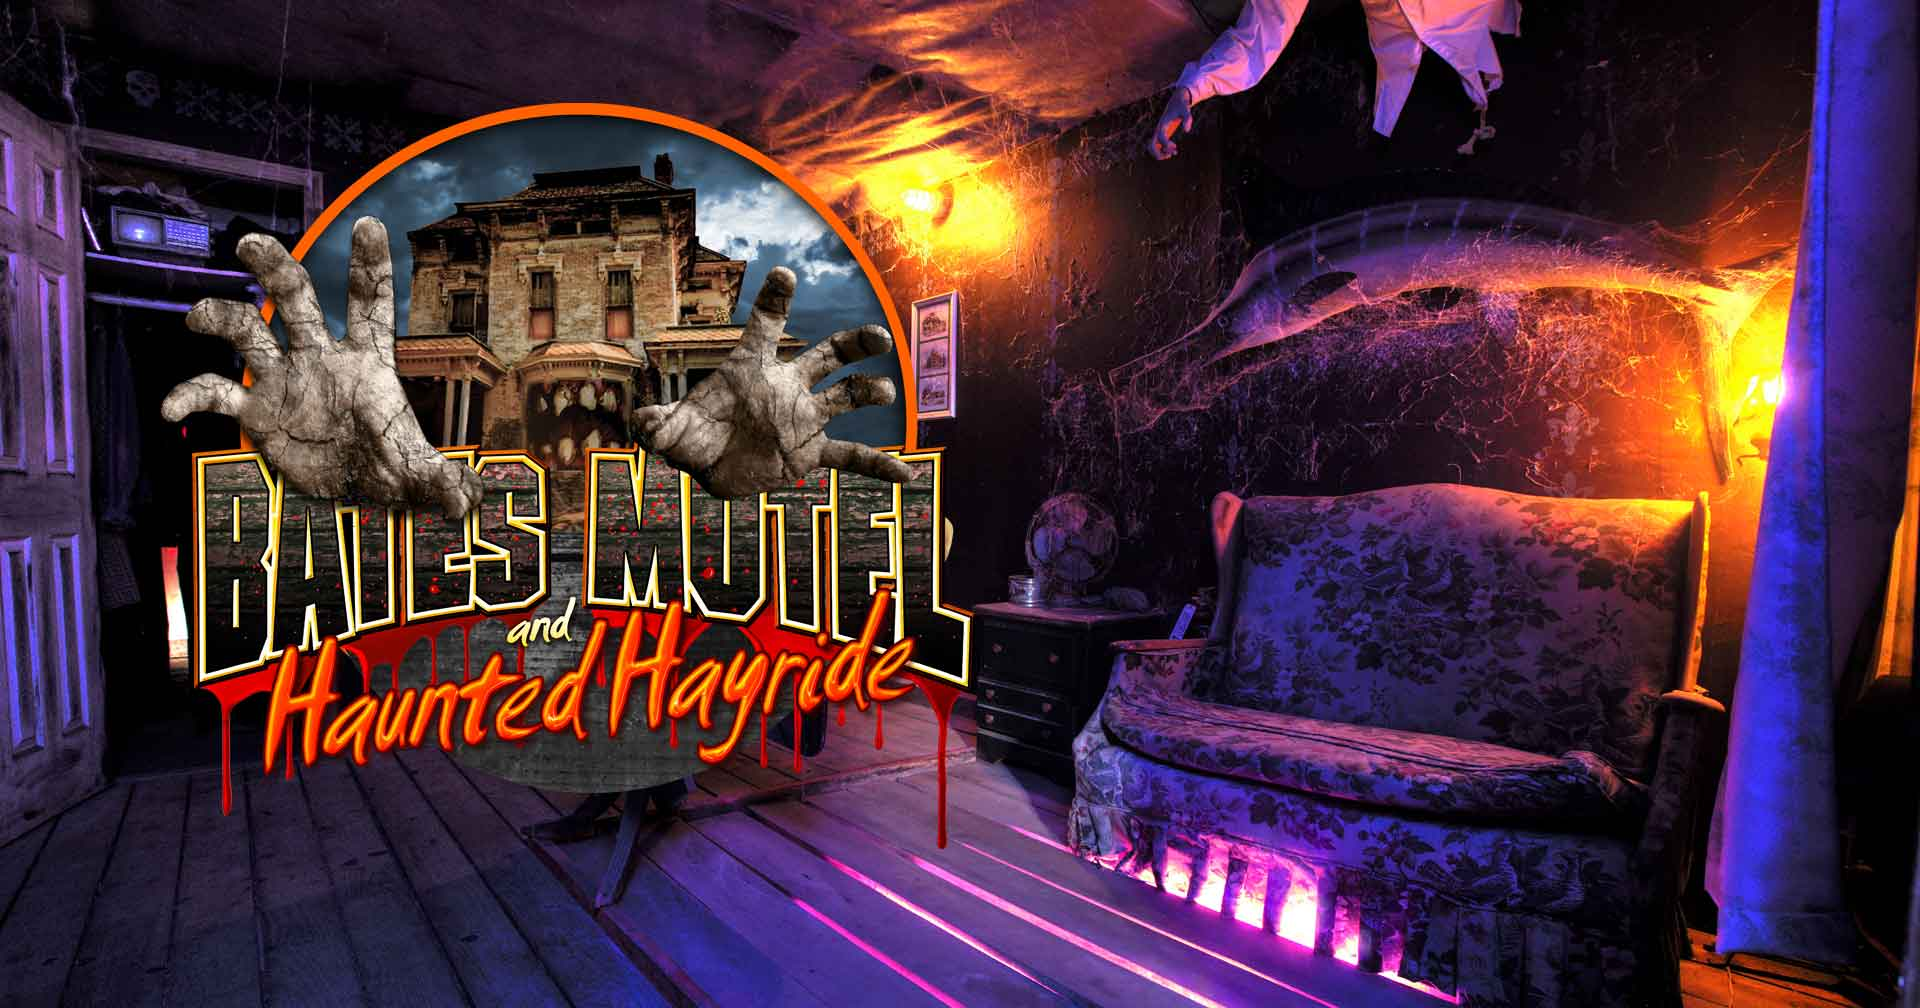 (Video) Oprah Magazine Names Bates Motel in Glen Mills as 'Scariest Haunted House in America'